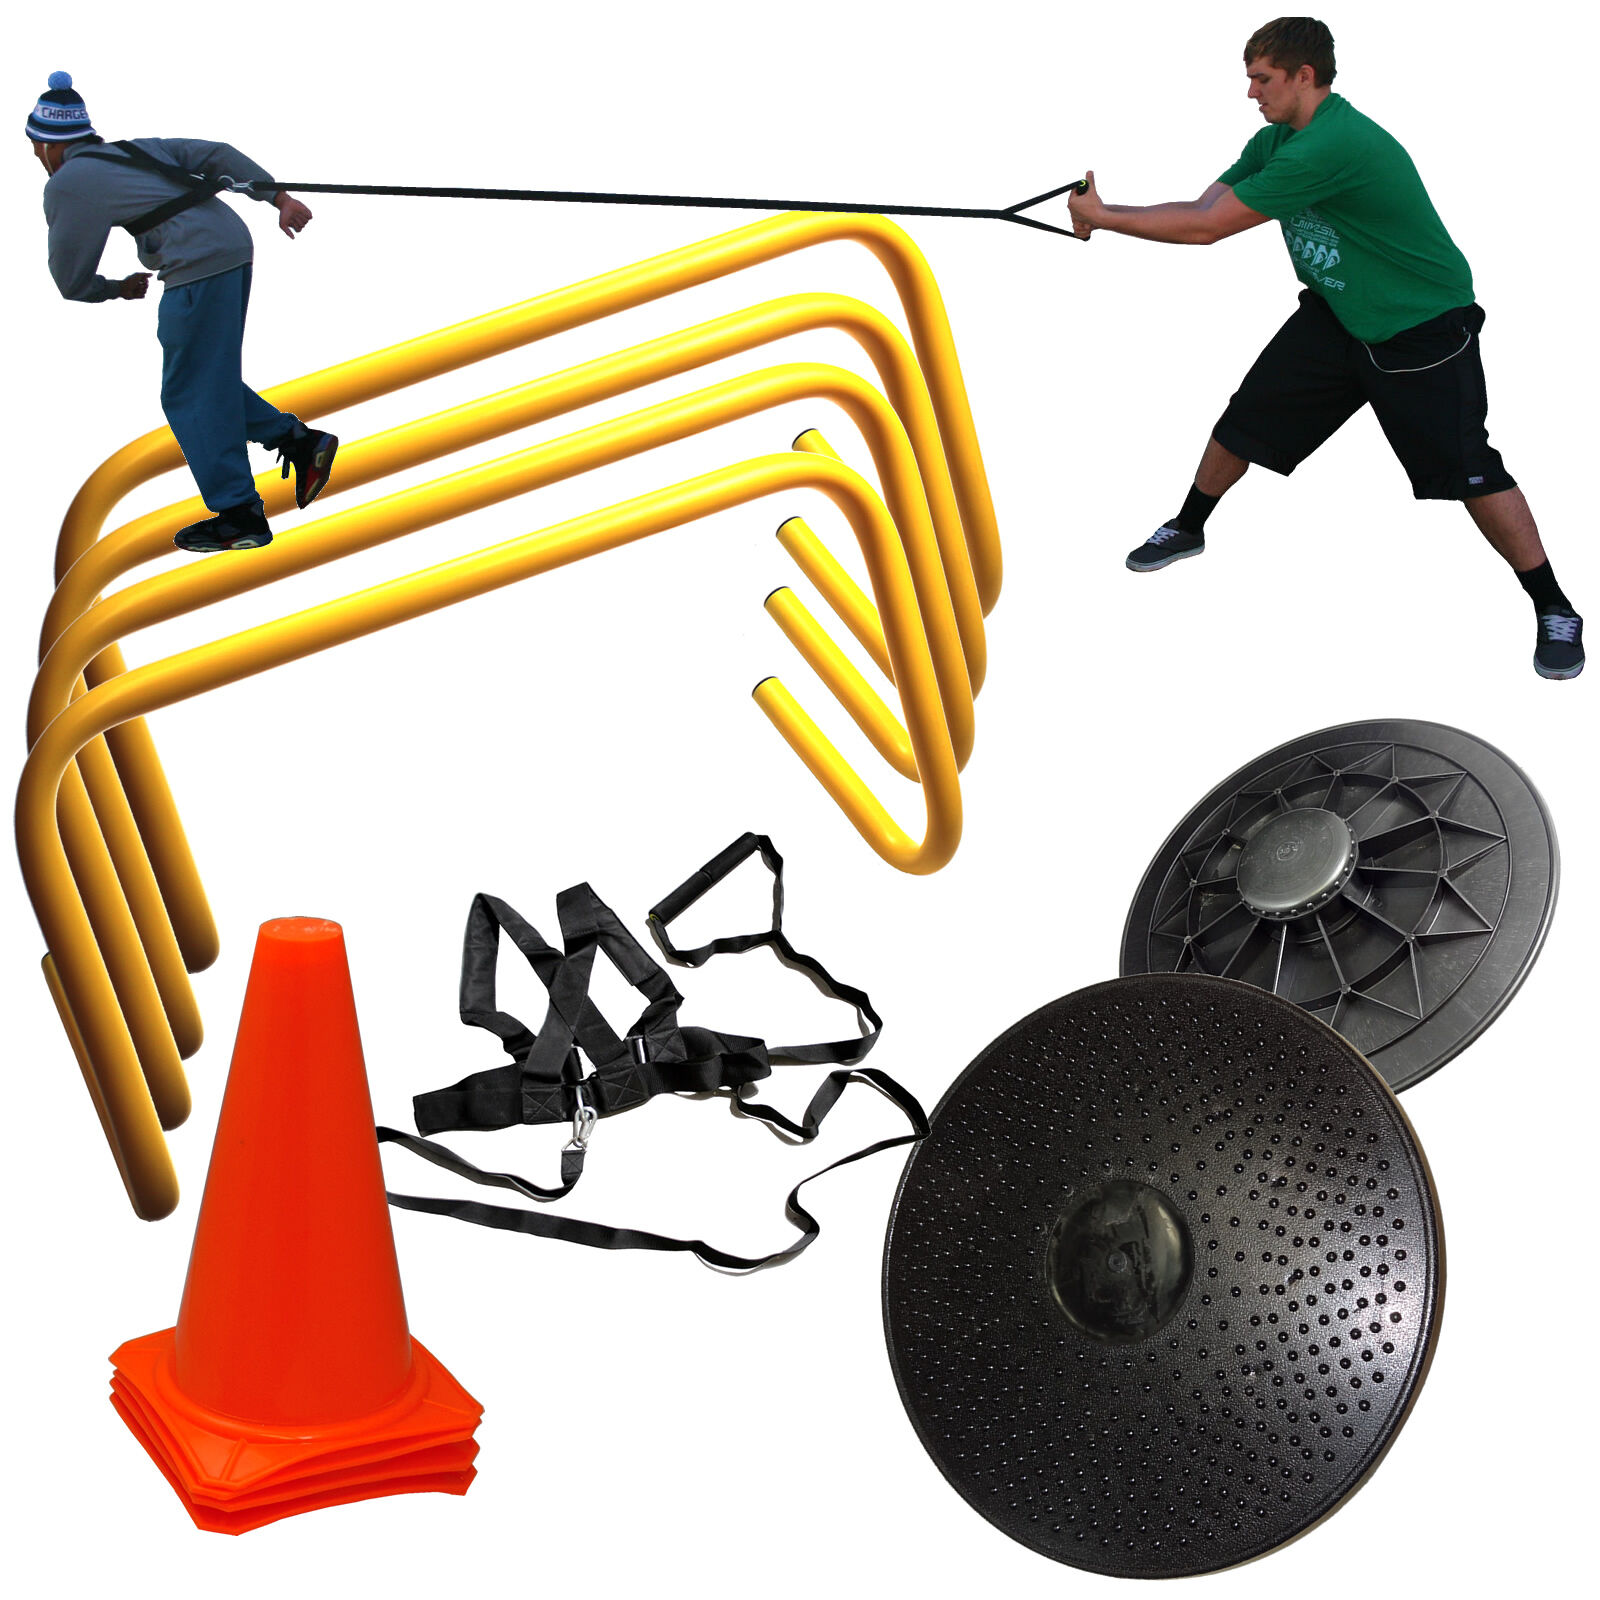 Core Stability Training Kit with Hurdles Cones Resistance Harness Balance Board